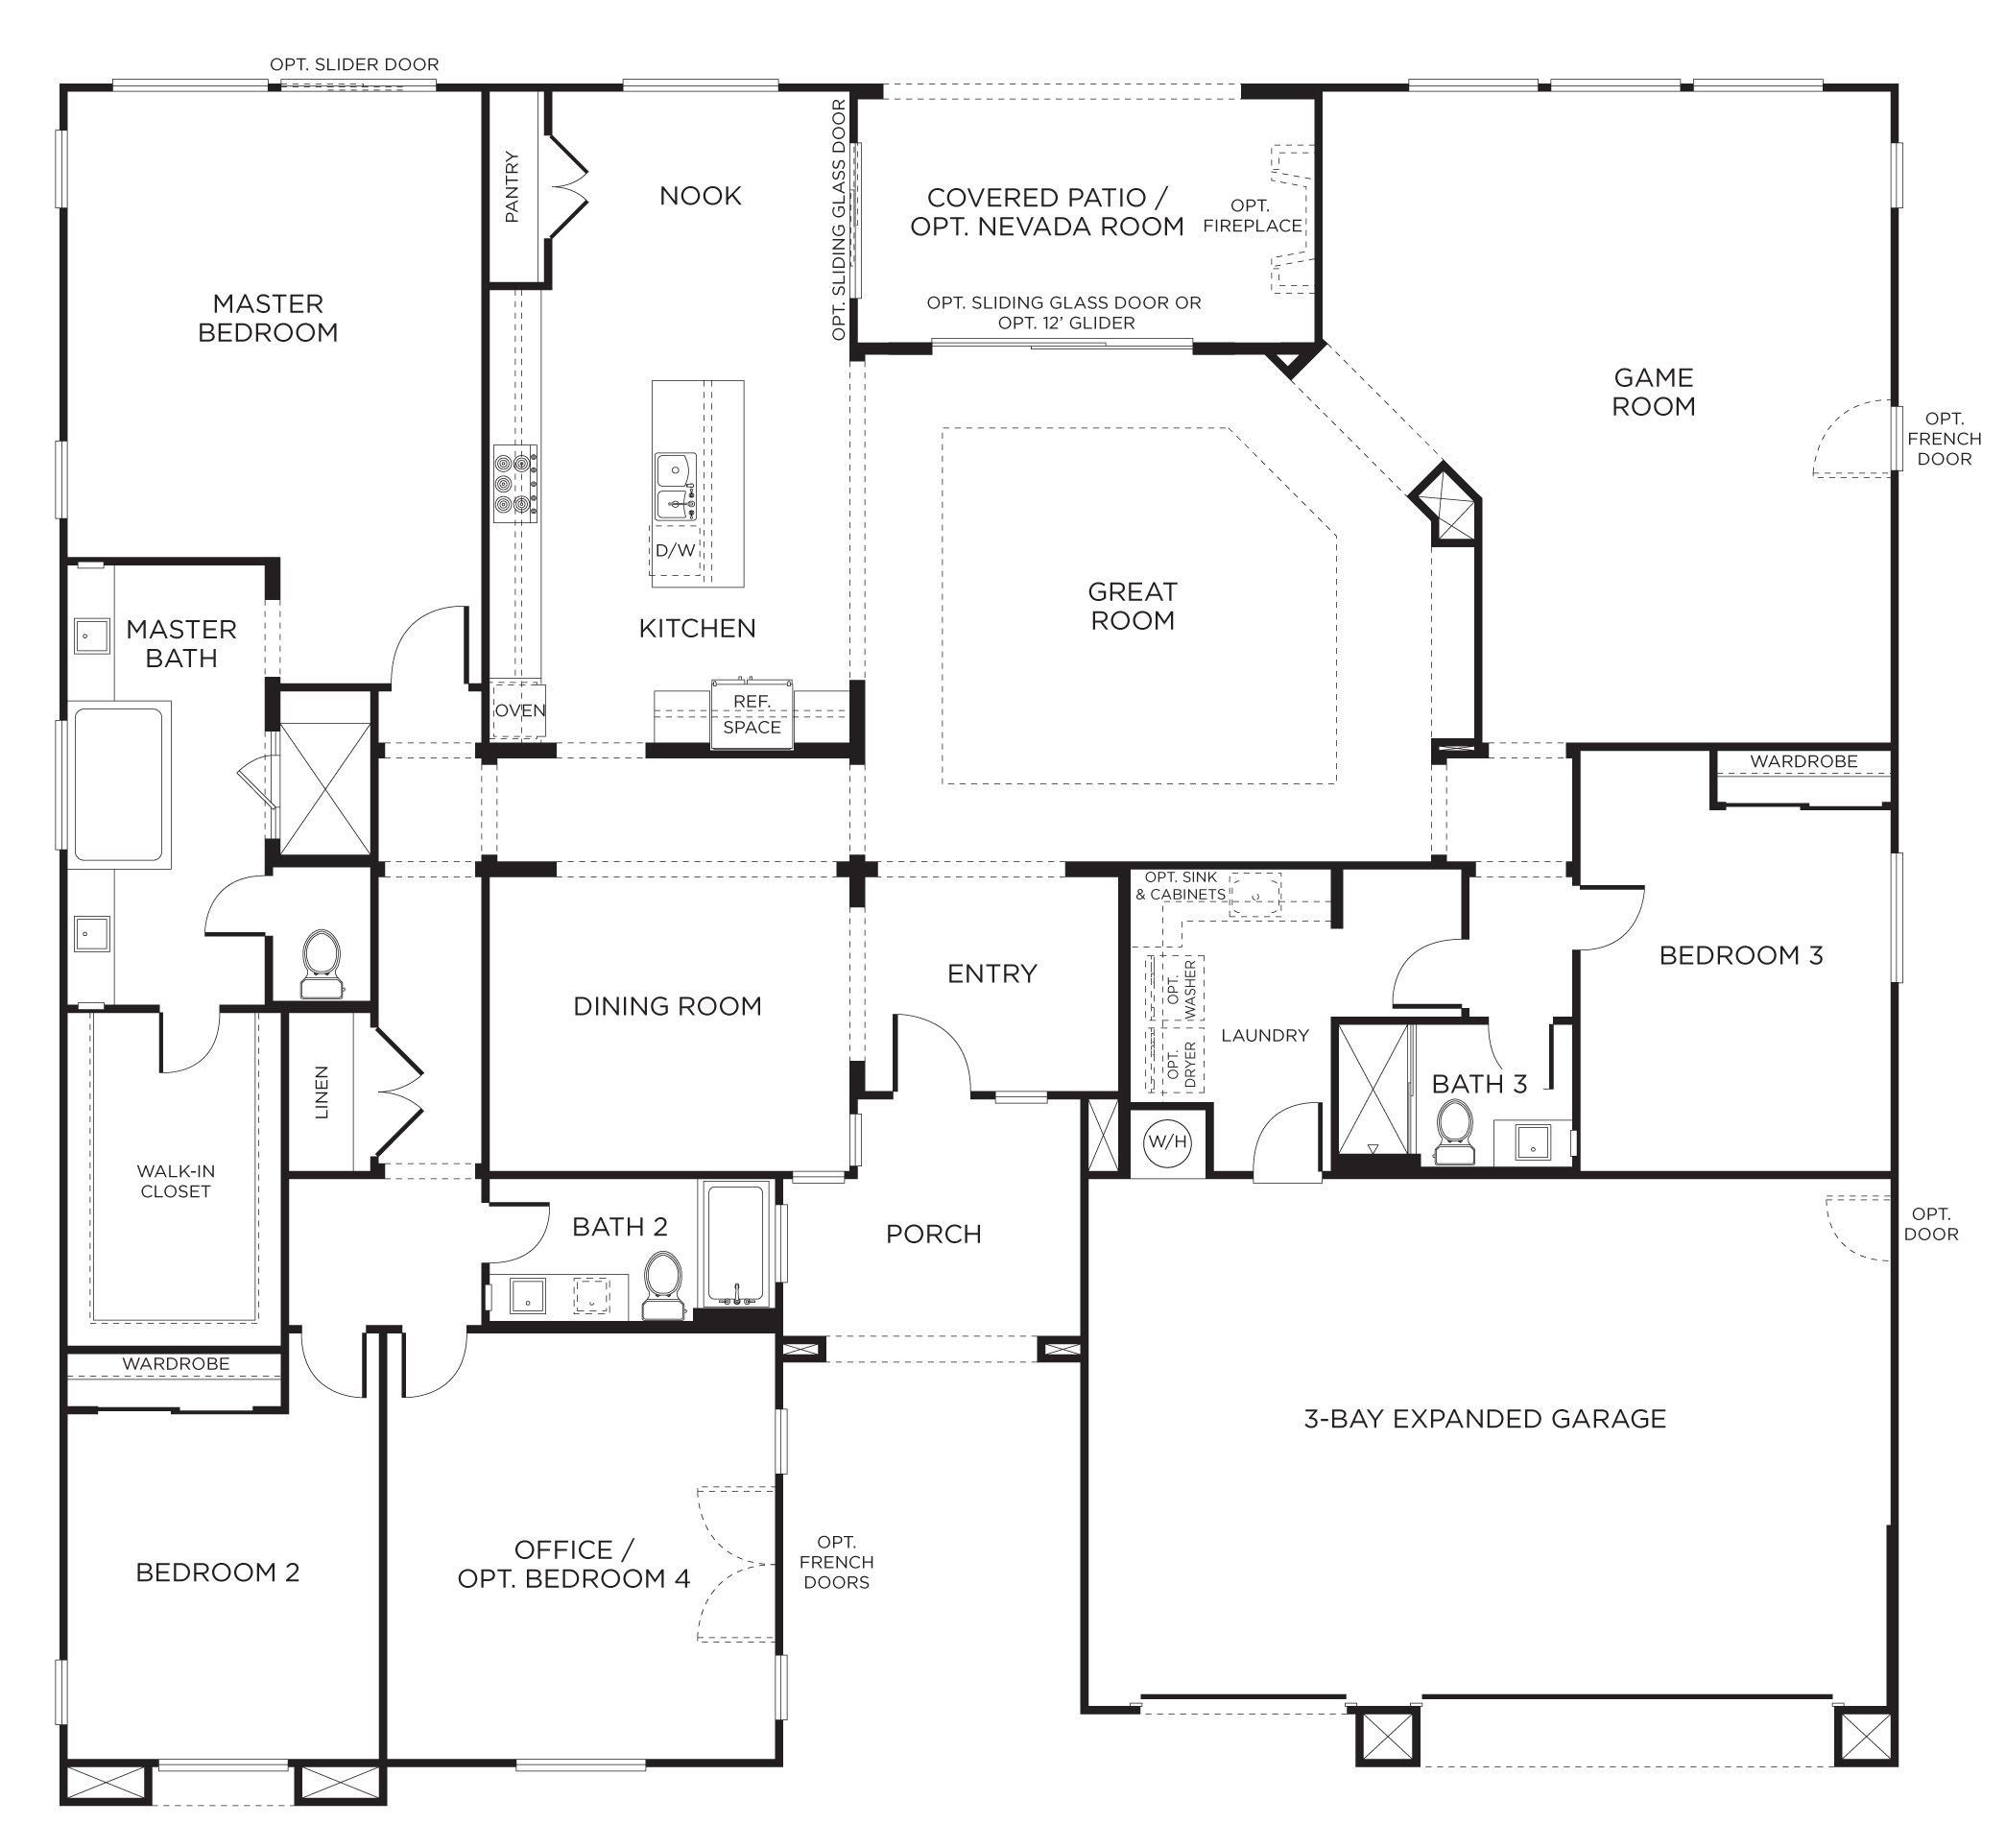 Floorplan 2 3 4 bedrooms 3 bathrooms 3400 square feet 4 bedroom single story floor plans